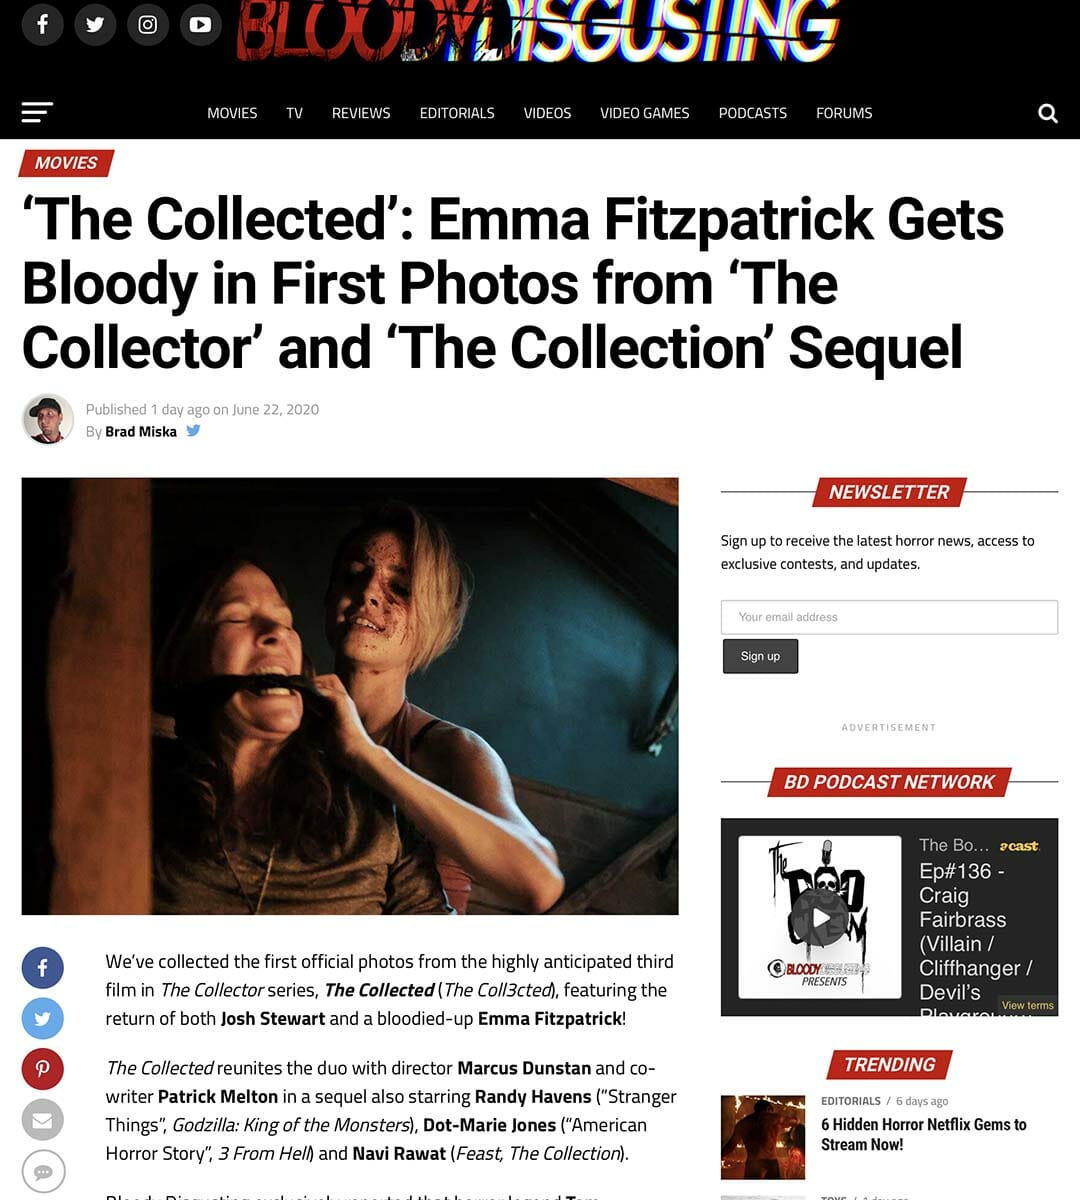 BLOODY DISGUSTING: 'The Collected': Emma Fitzpatrick Gets Bloody in First Photos from 'The Collector' and 'The Collection' Sequel